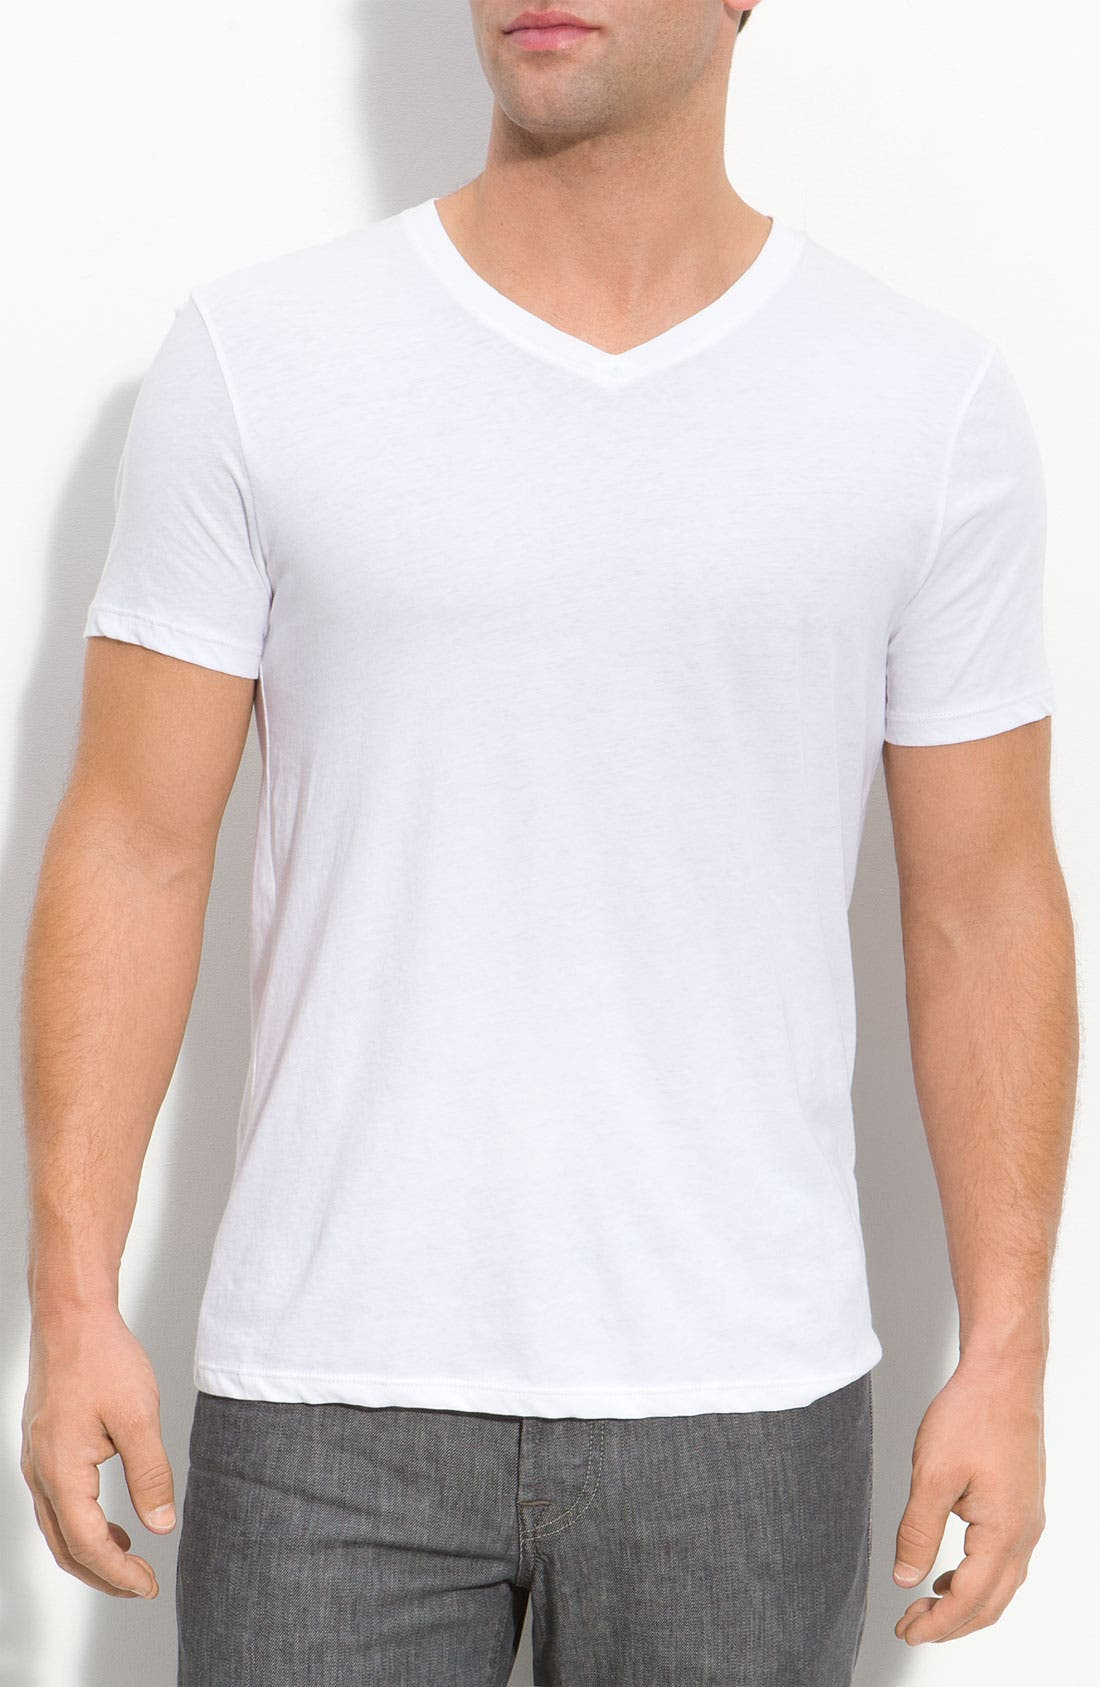 Main Image - Vince Short Sleeve T-Shirt